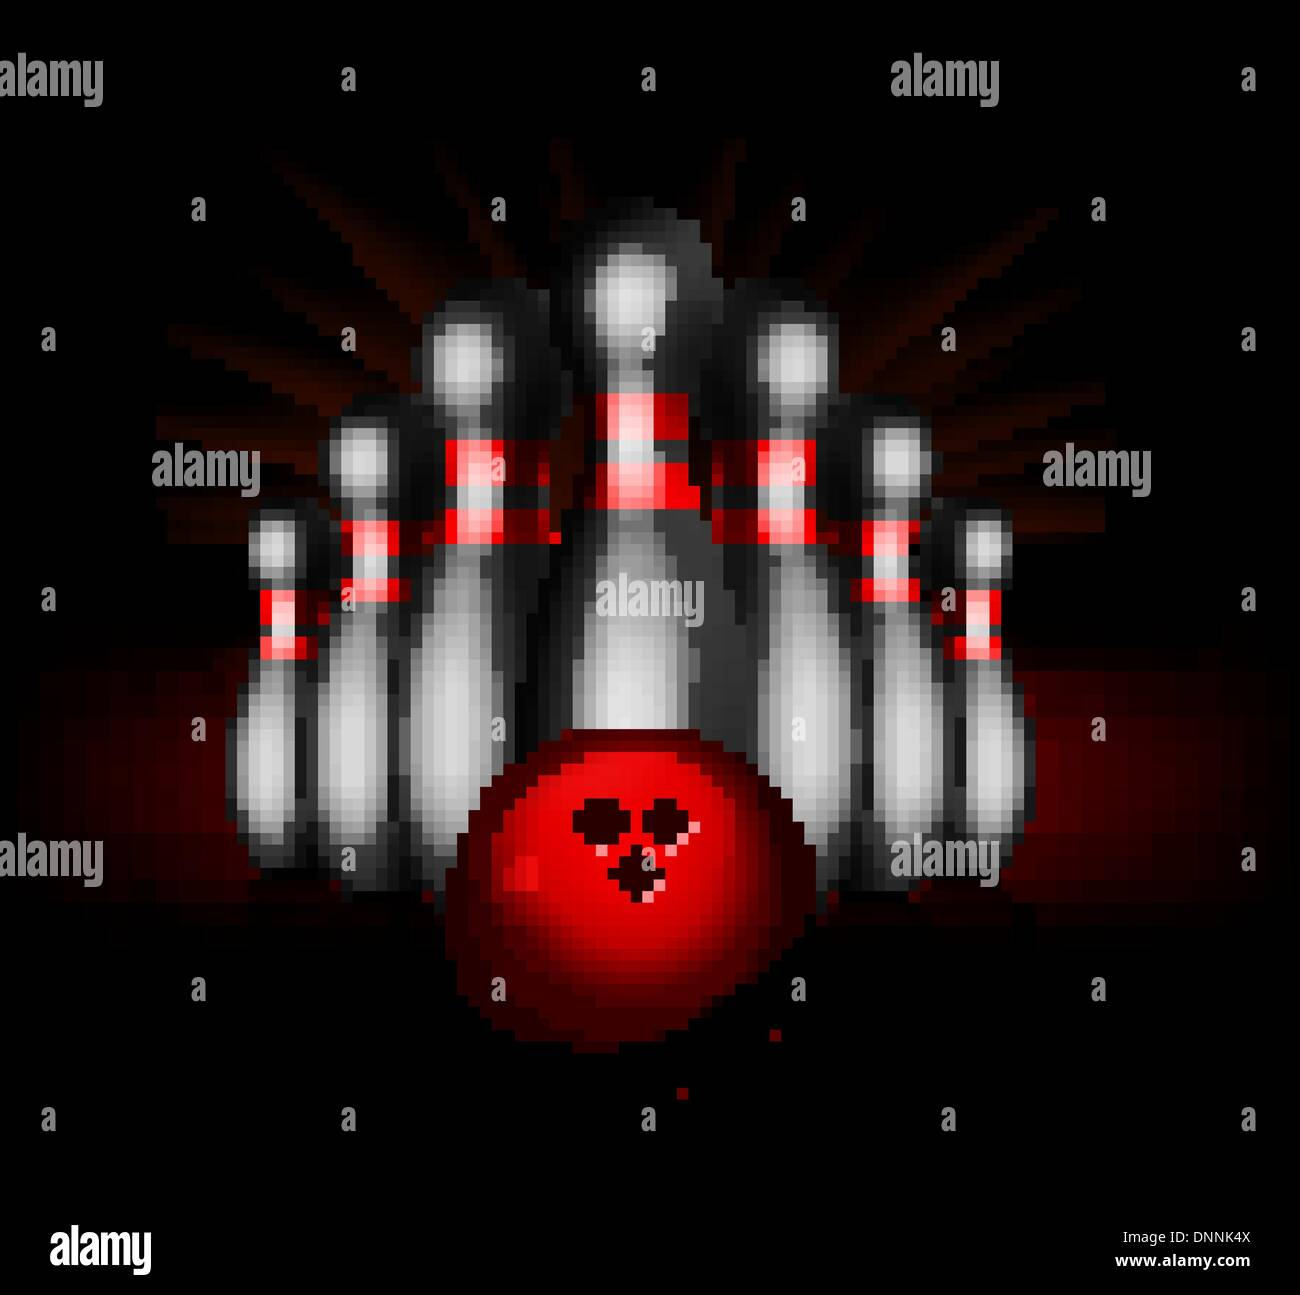 Bowling vector illustration isolated on black background - Stock Vector